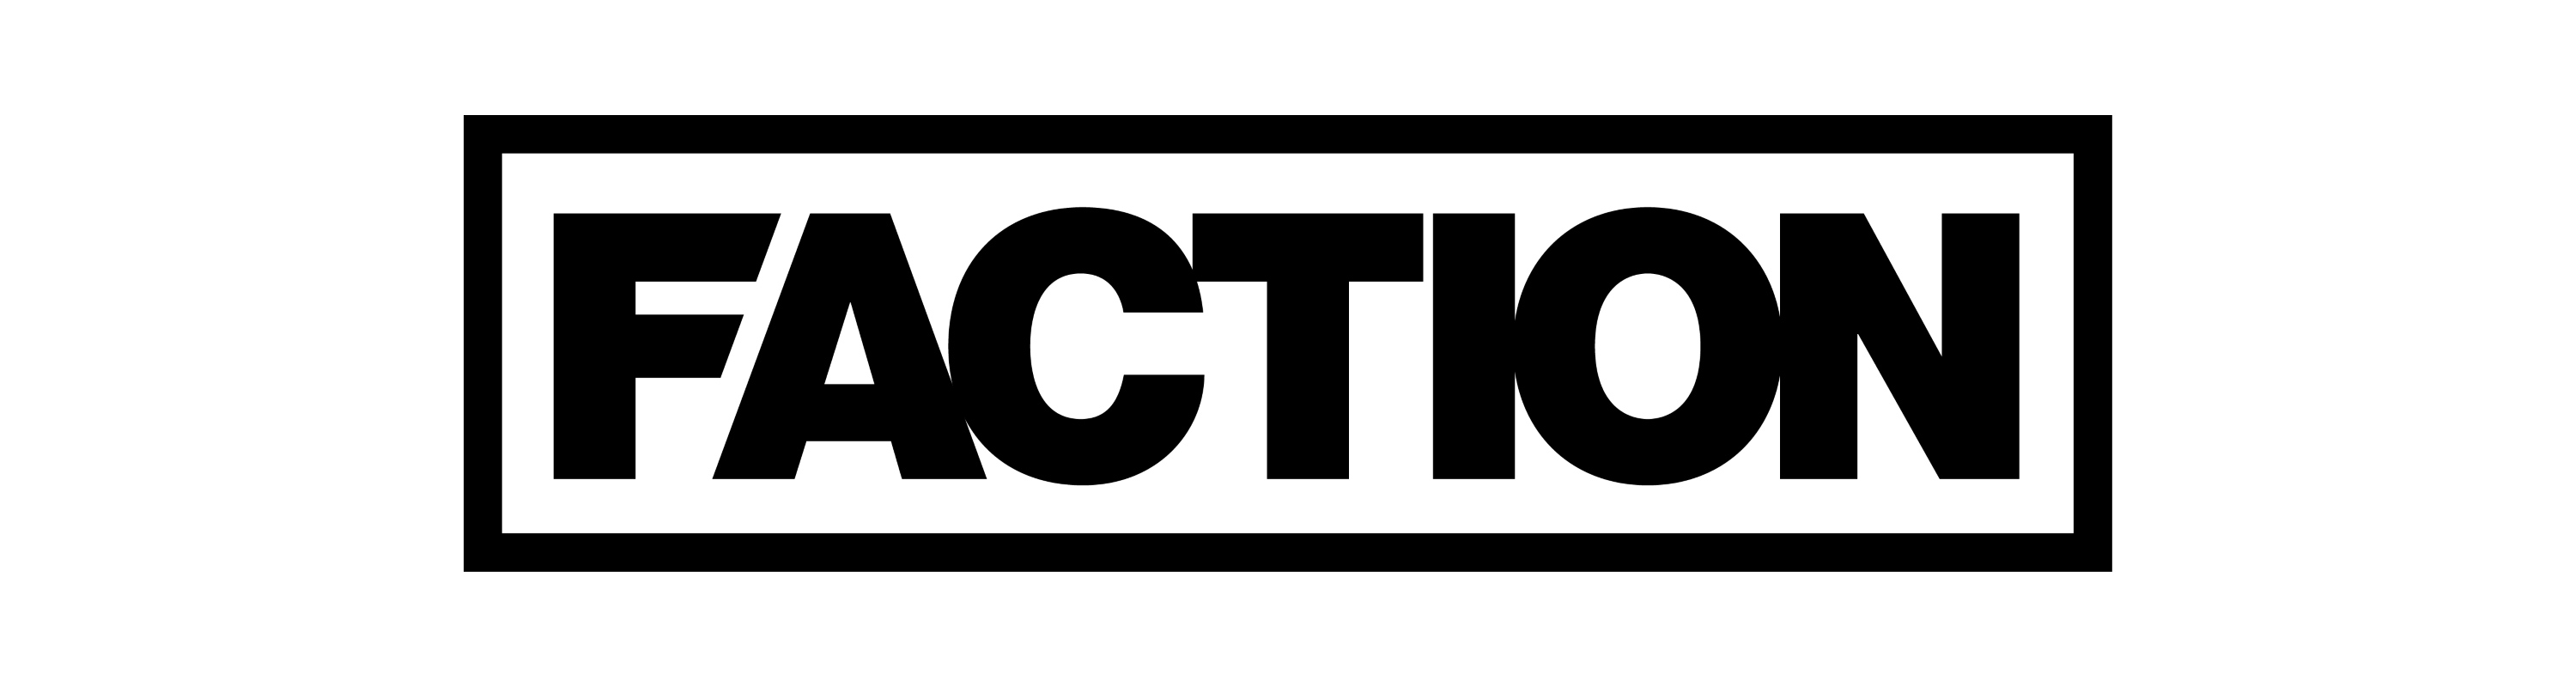 FACTION SKIS - THE FULL STACK SUPPLY CO